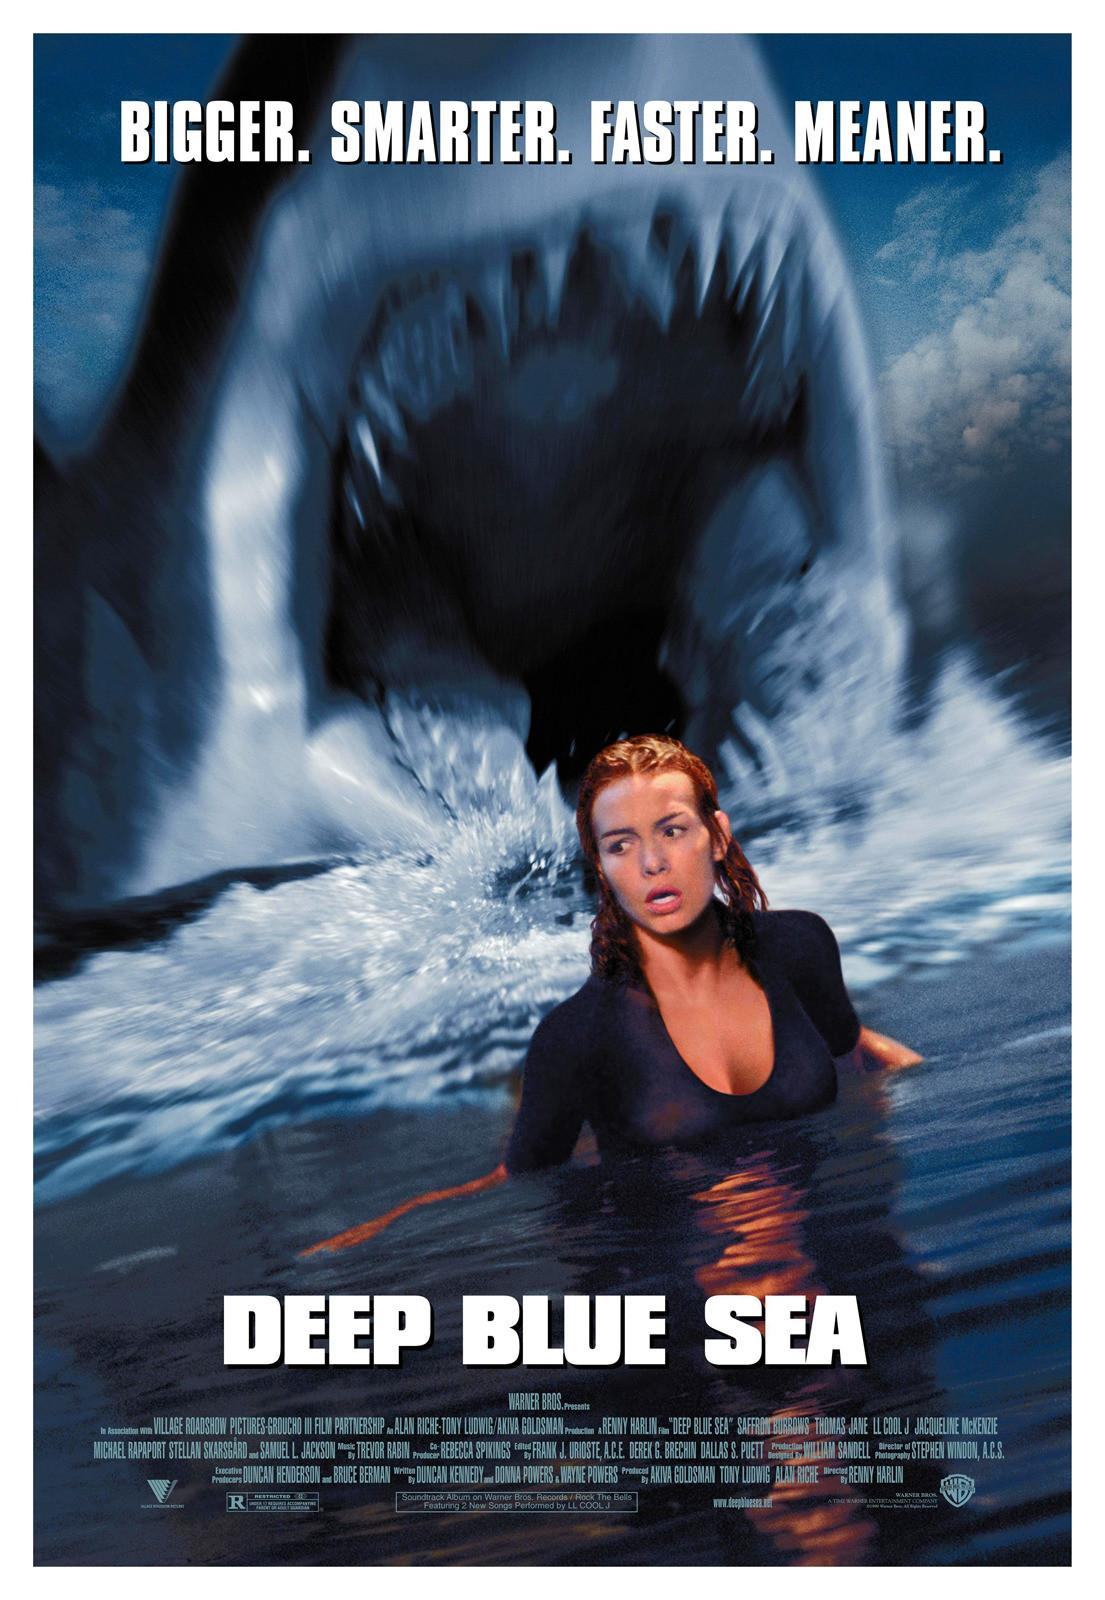 deep_blue_sea_poster_1999_01.jpg